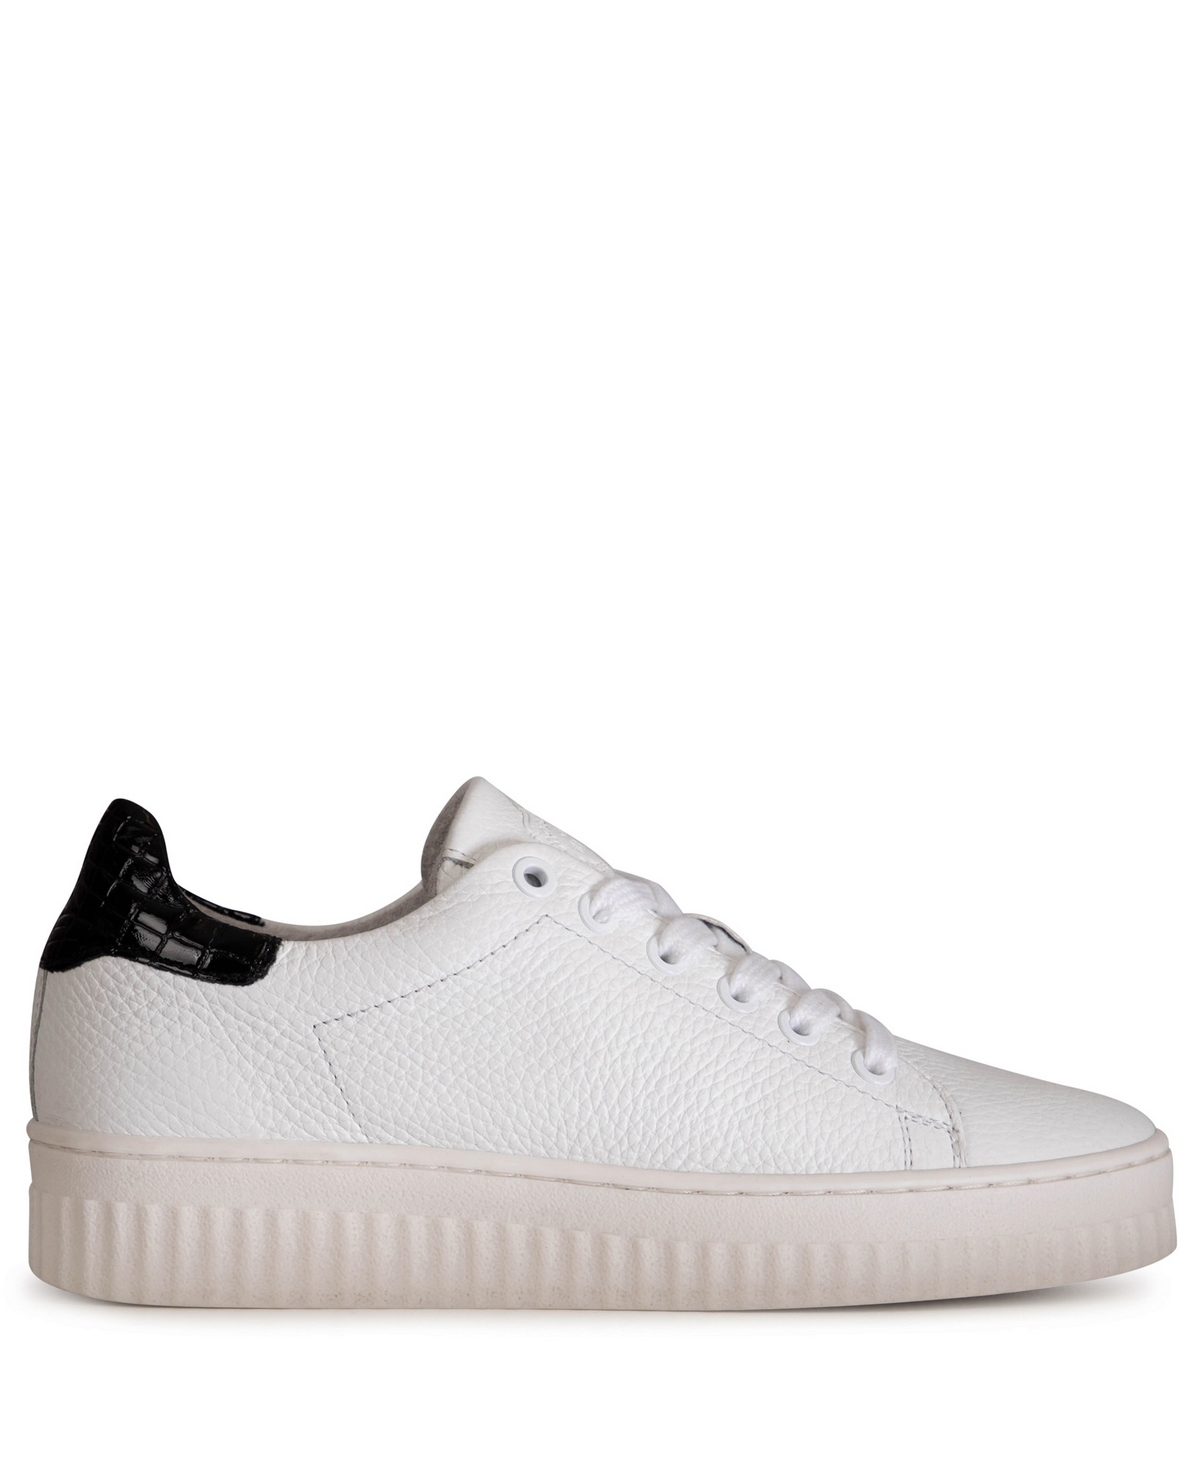 Shoecolate Lage sneaker Wit 8.10.02.014.01